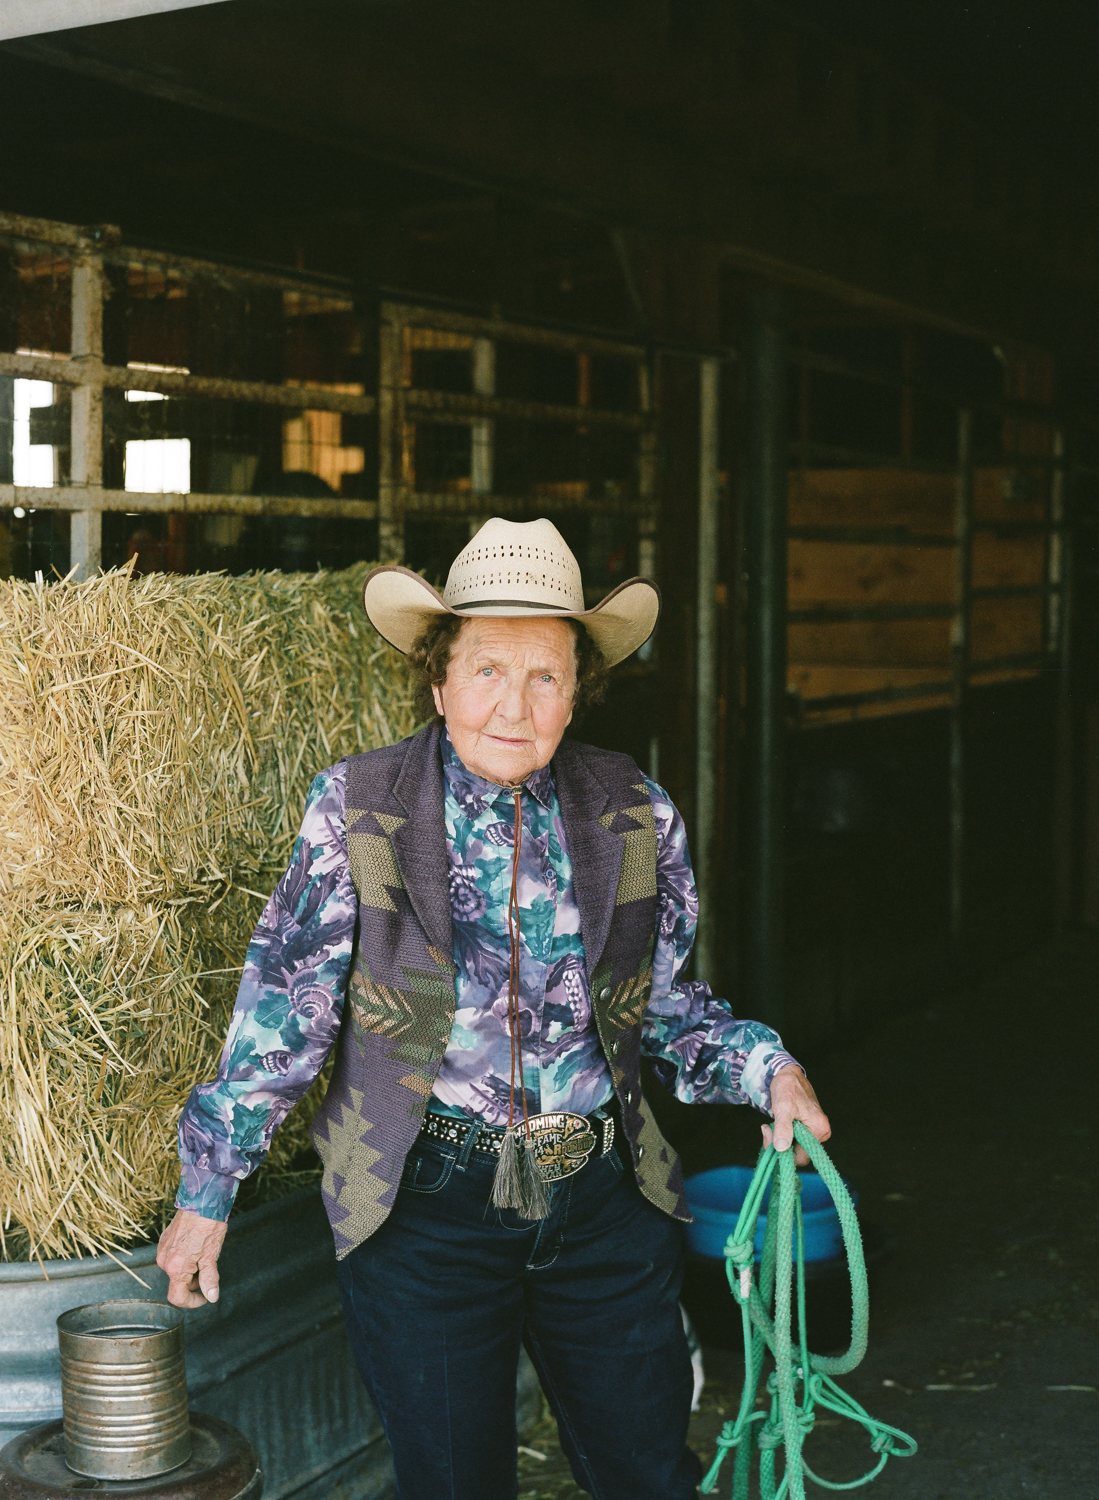 Cowgirl, mentor and matriarch of the Thoman ranch in Sweetwater county, Mickey Thoman epitomizes true western grit and spirit.